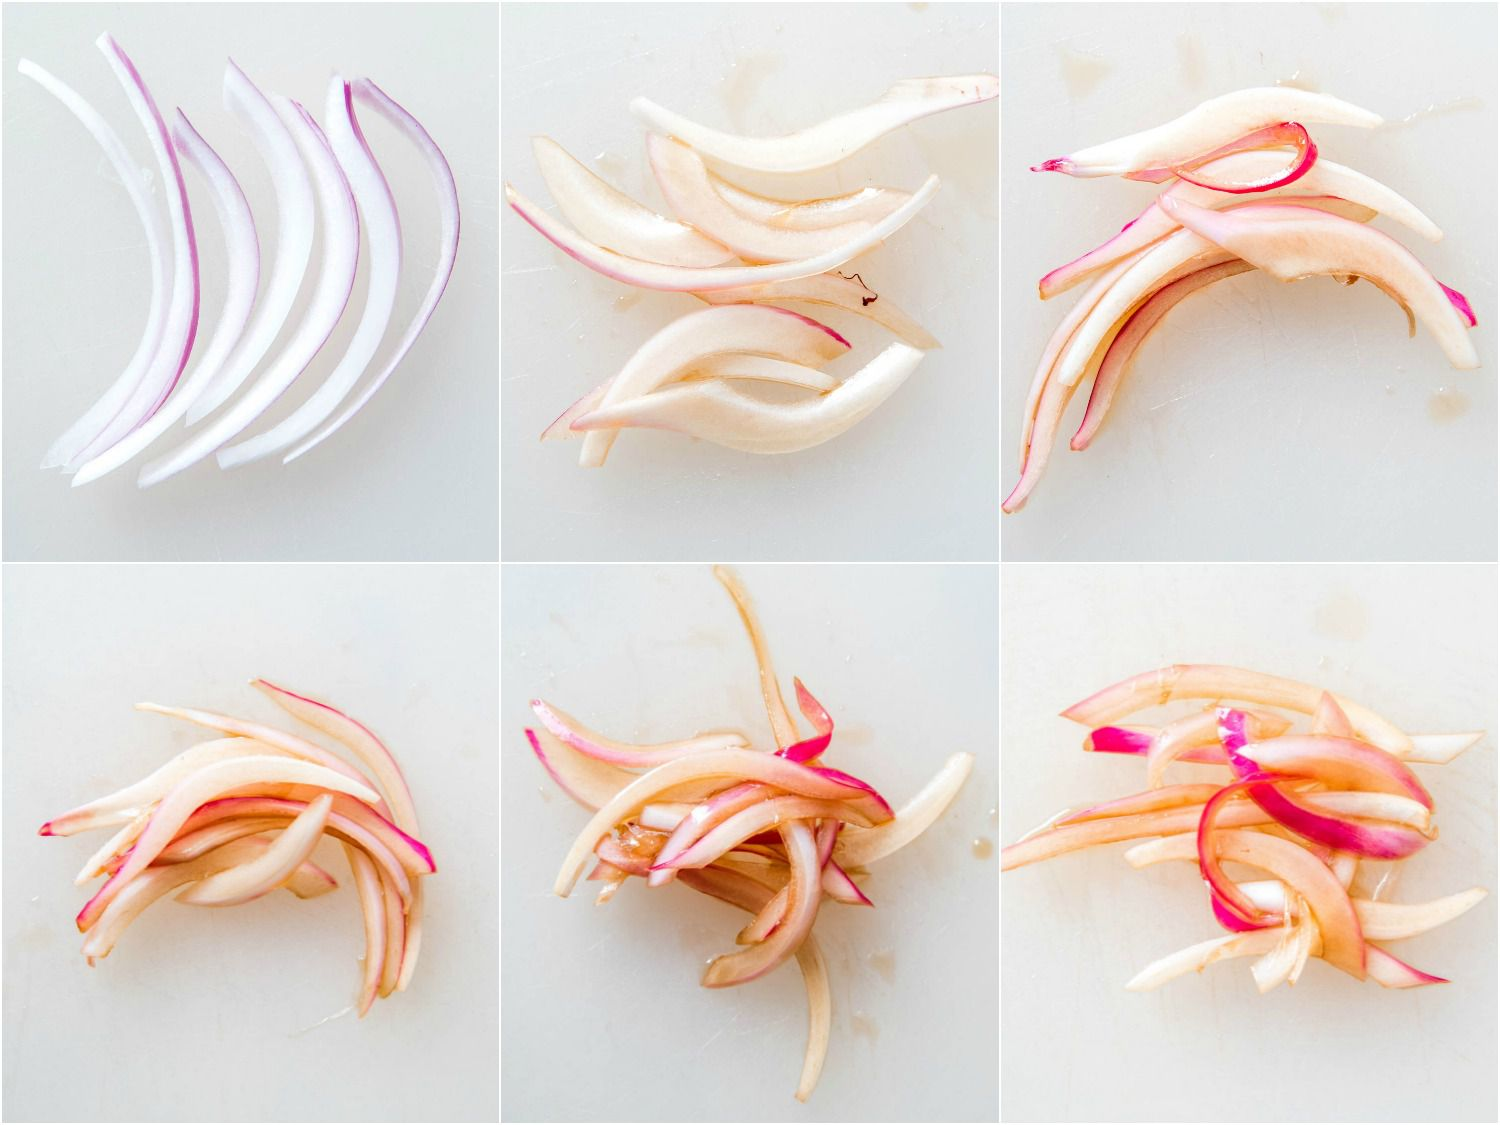 20160719-rapid-pickled-onions-collage-vicky-wasik-3.jpg